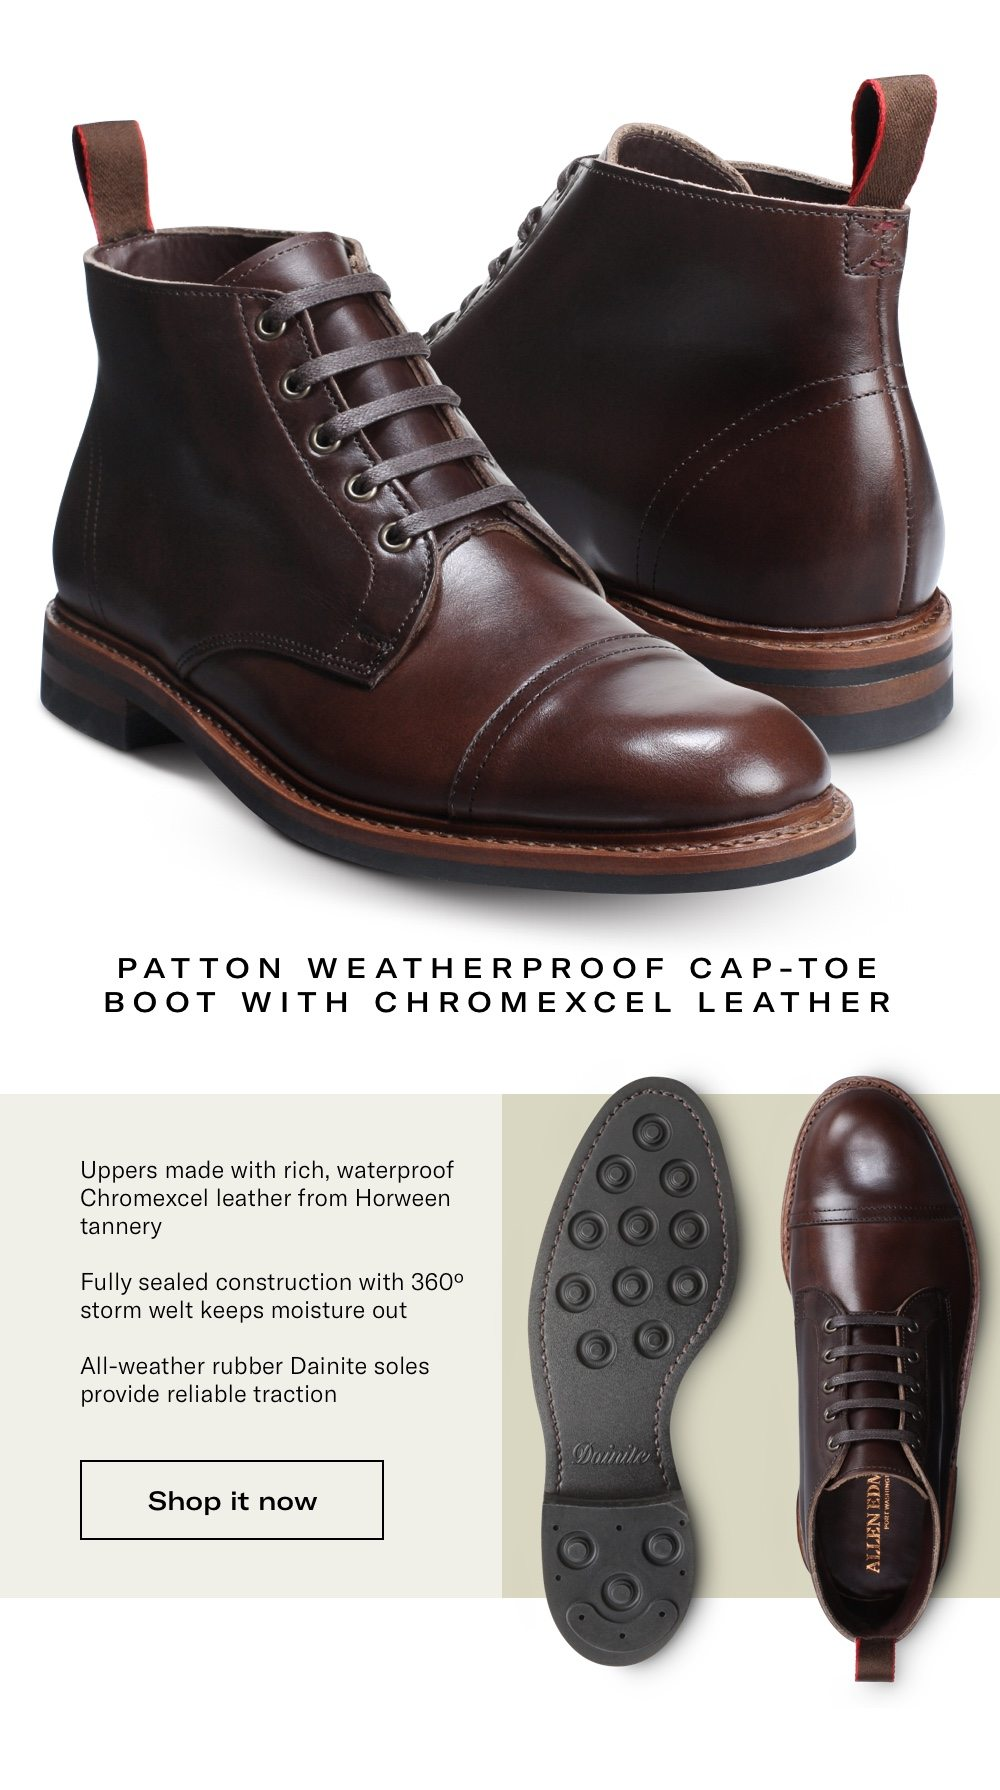 Patton Weatherproof Cap-Toe Boot with Chromexcel Leather